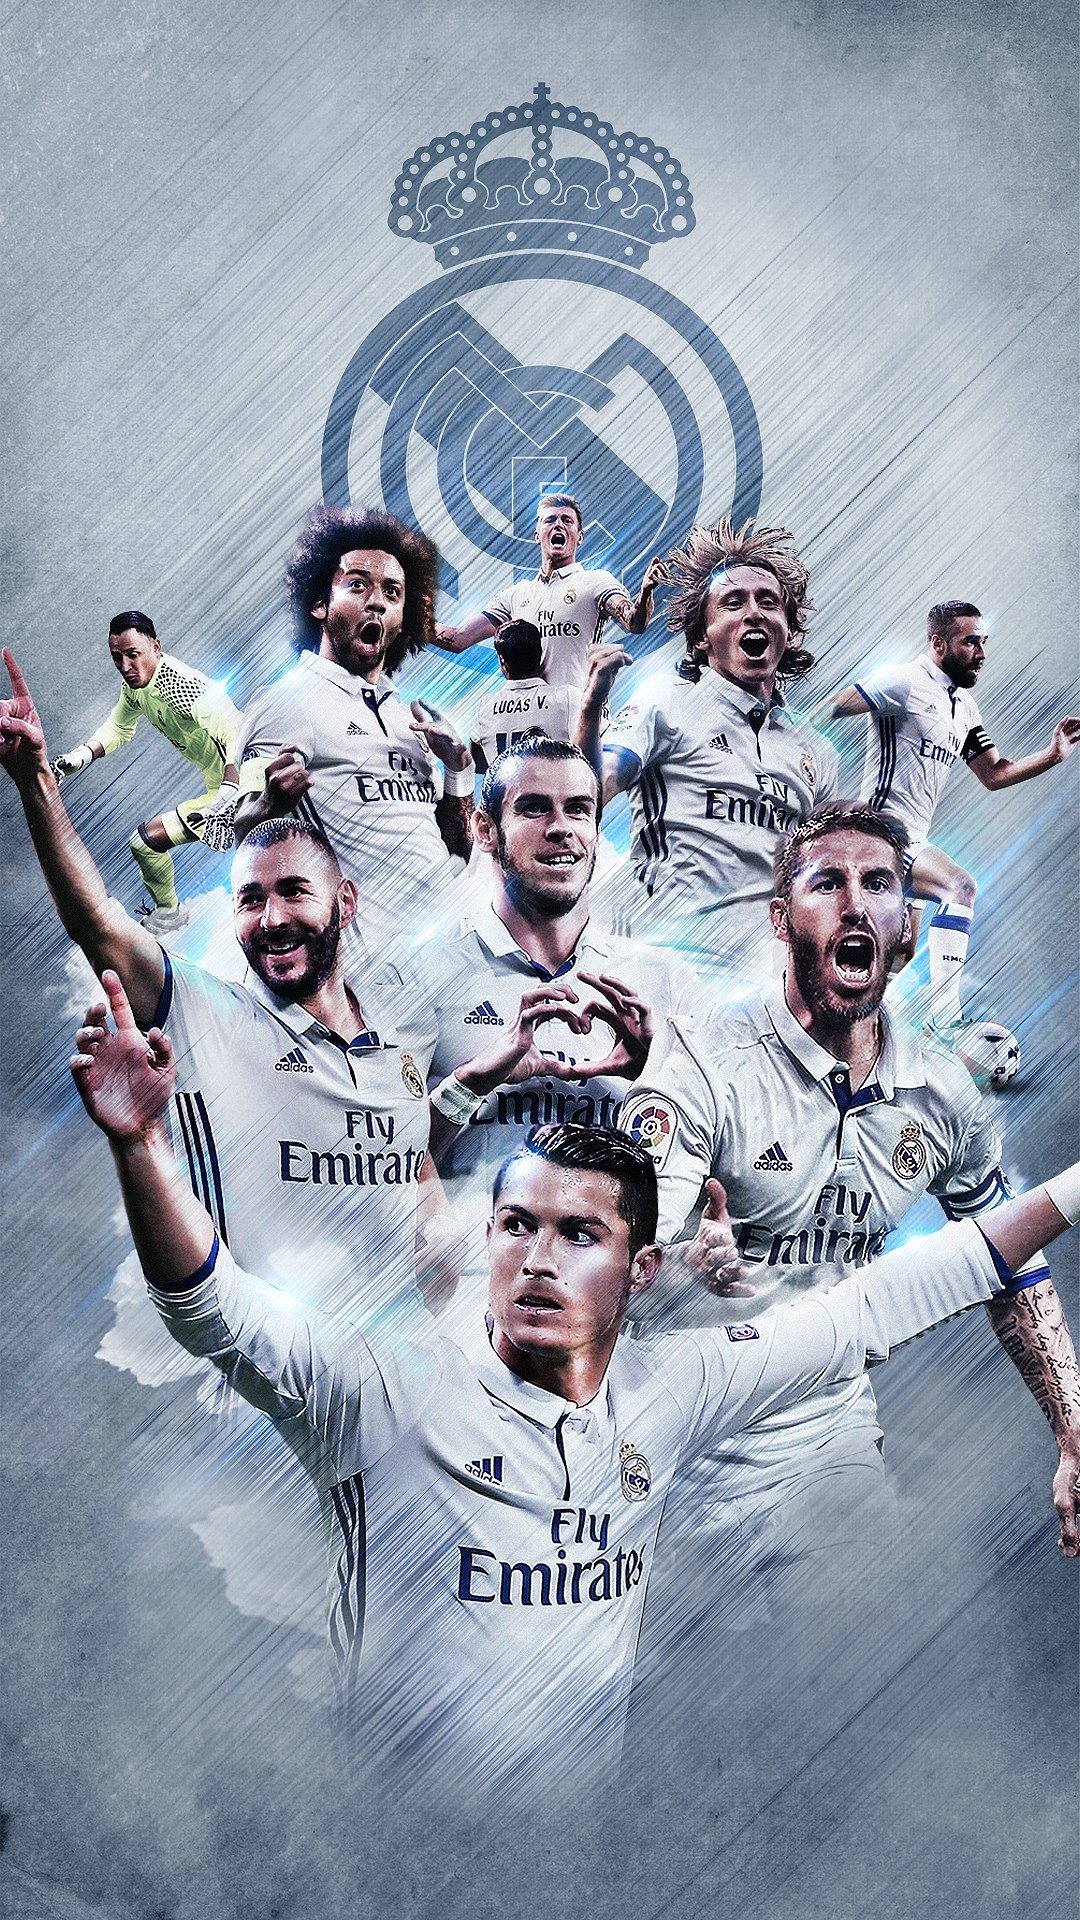 17+] Real Madrid Team 2018 Wallpapers